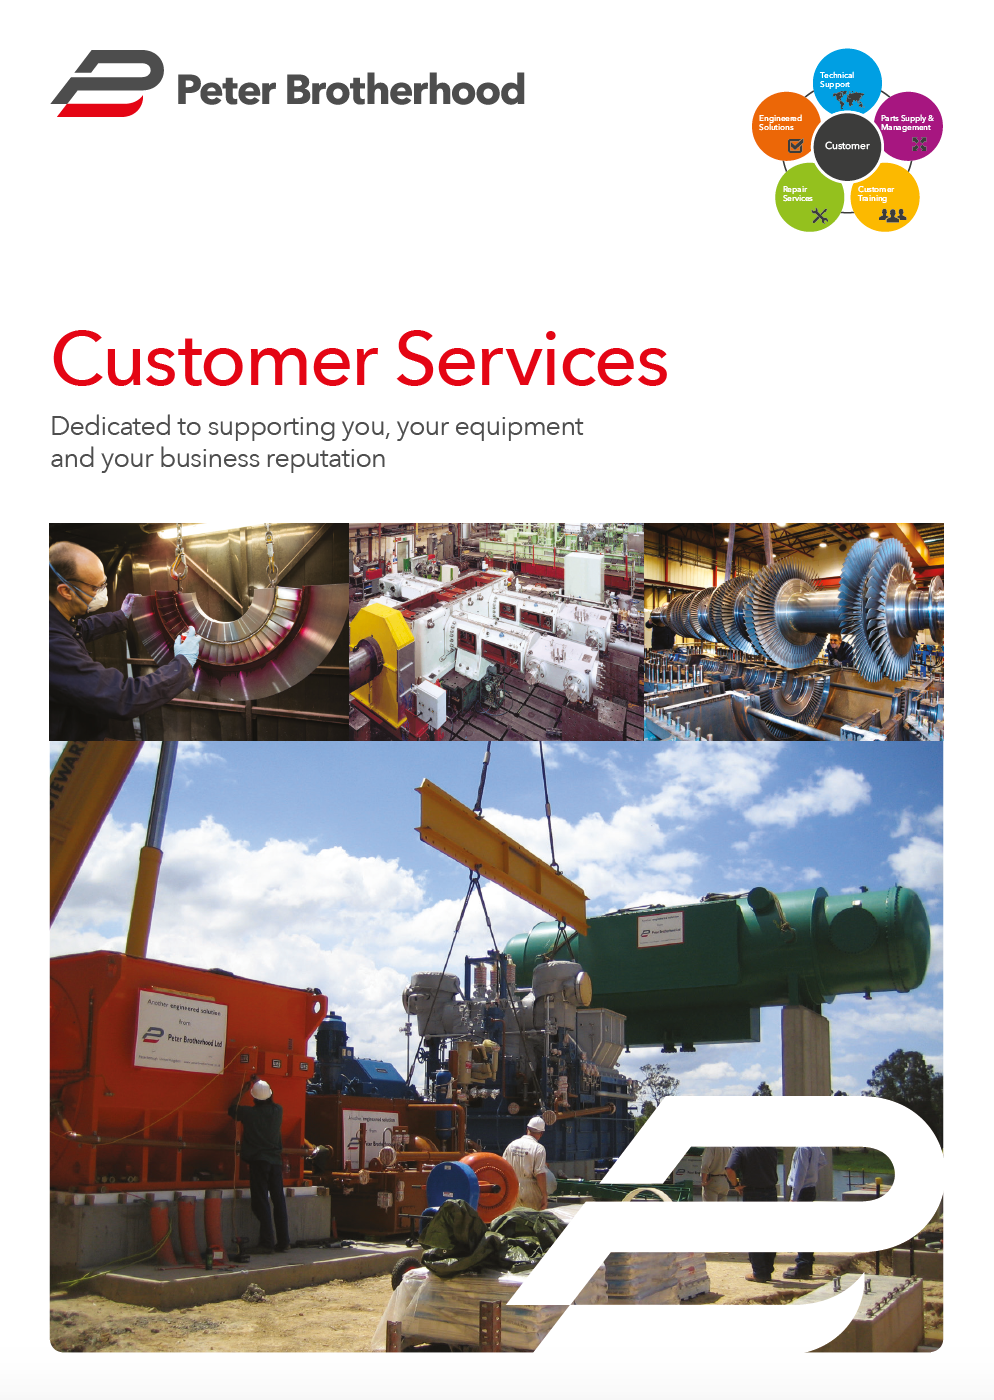 Customer Services for Steam Turbines, Compressors, CHP Units and Gearboxes